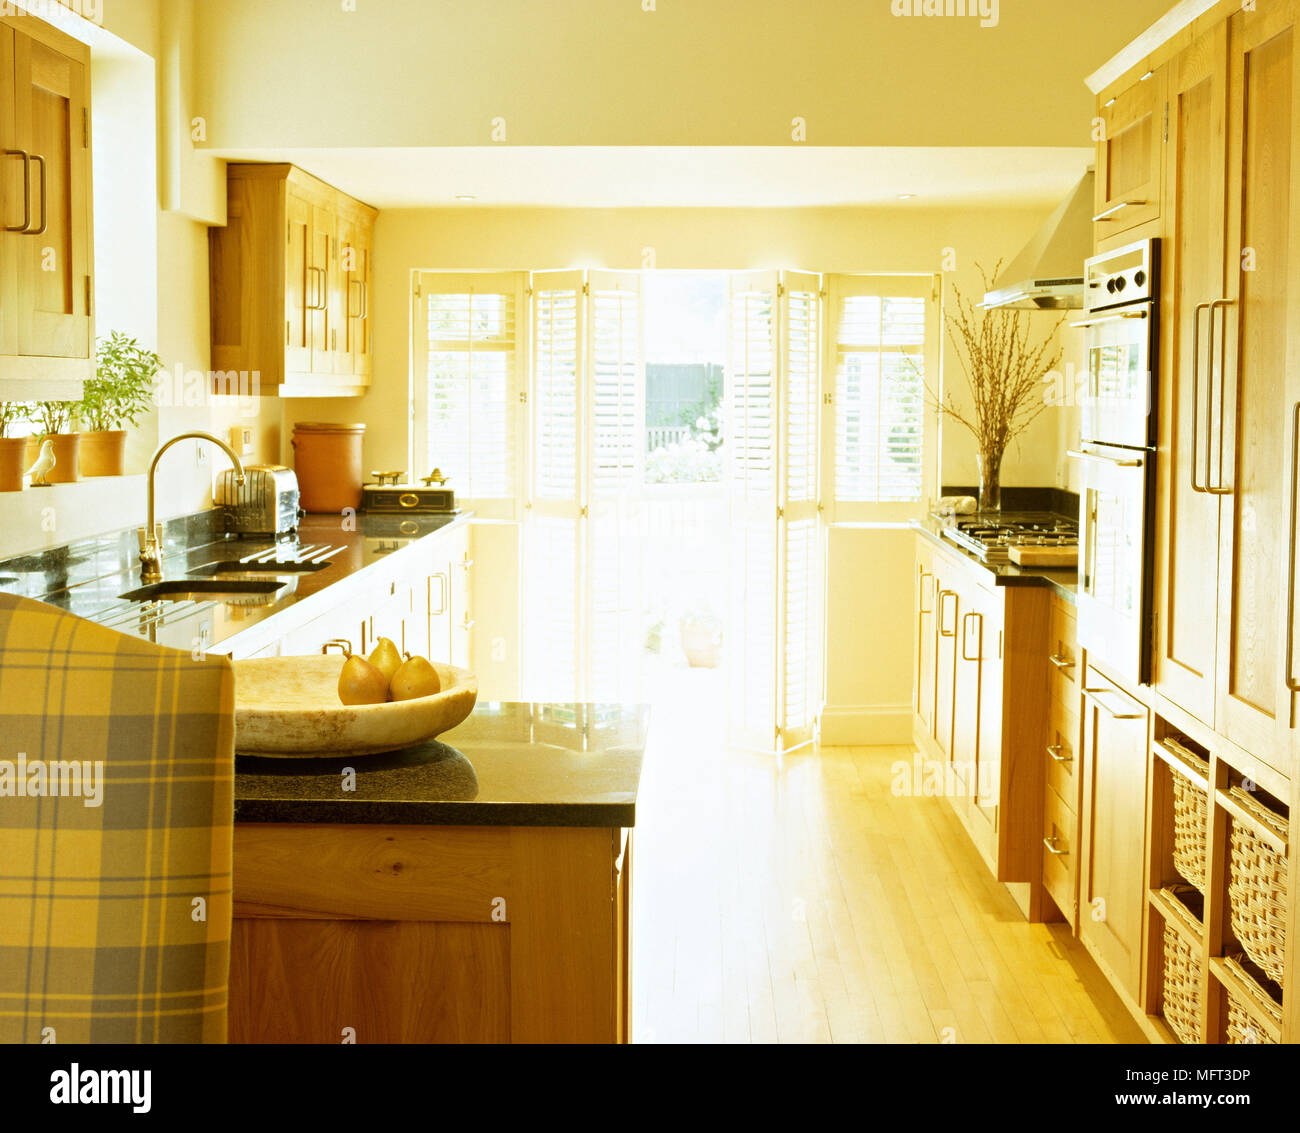 country style kitchen lighting. Modern Country Style Kitchen Wood Units Interiors Kitchens Light Sunny; - Stock Image Lighting